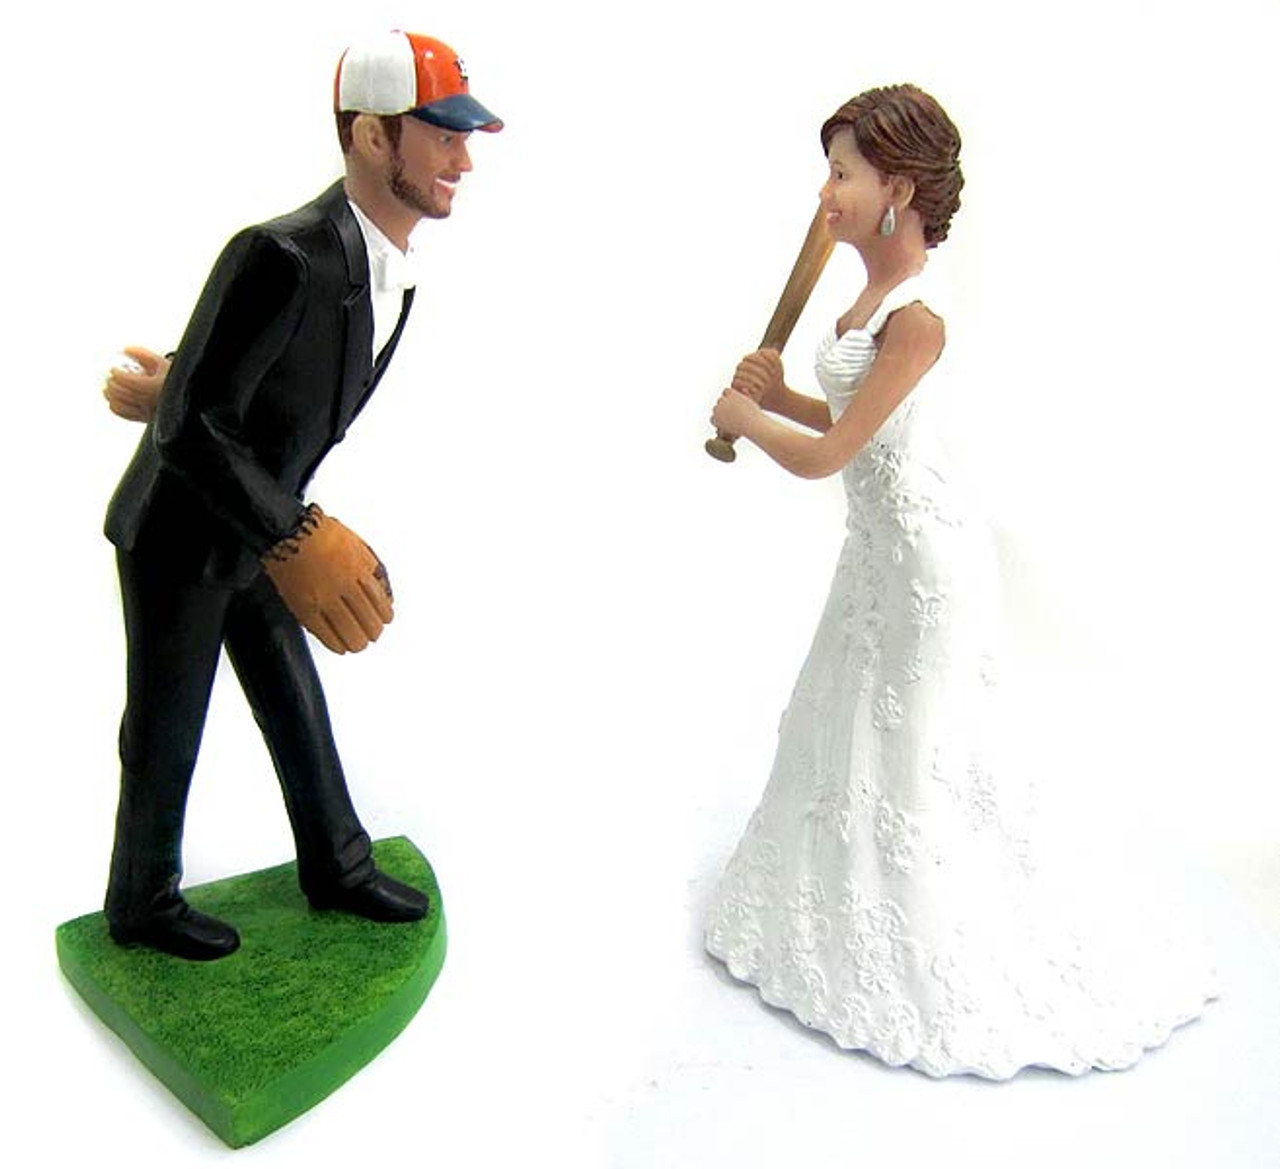 Baseball Wedding Cake Toppers - Custom, Personalized